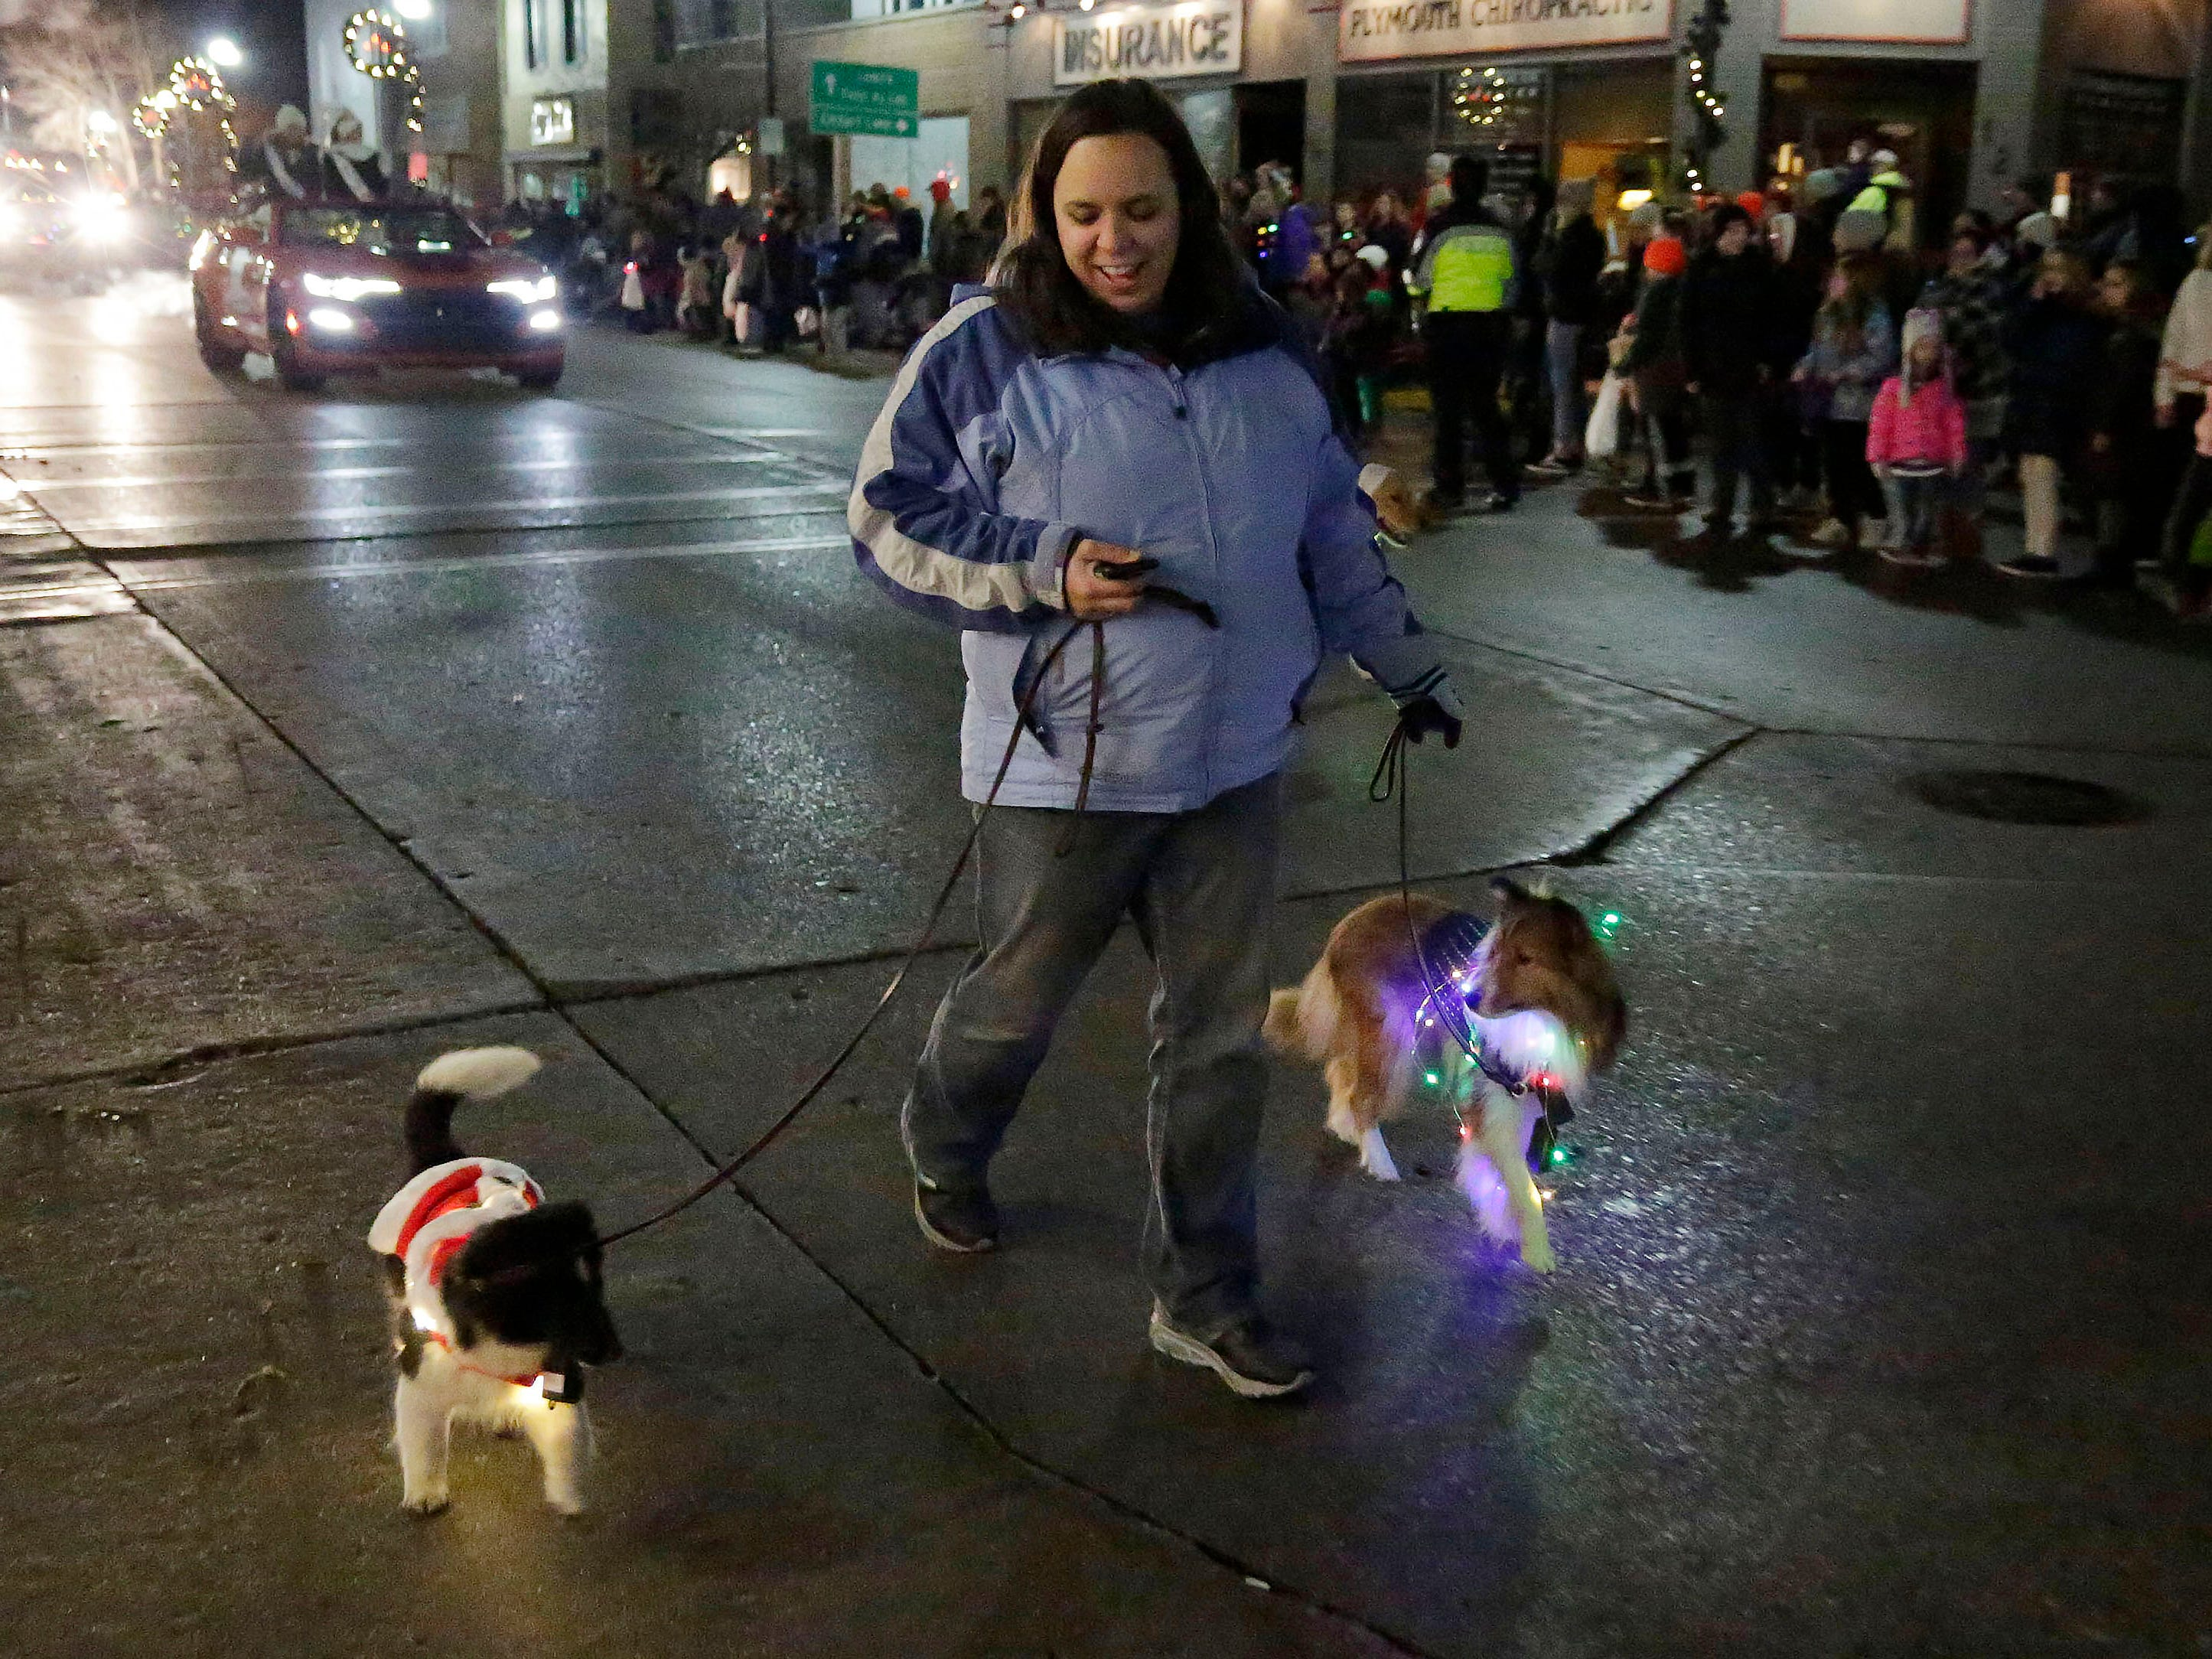 Dogs were decorated with holiday lights in the Plymouth Christmas Parade, Friday, November 23, 2018, in Plymouth, Wis.